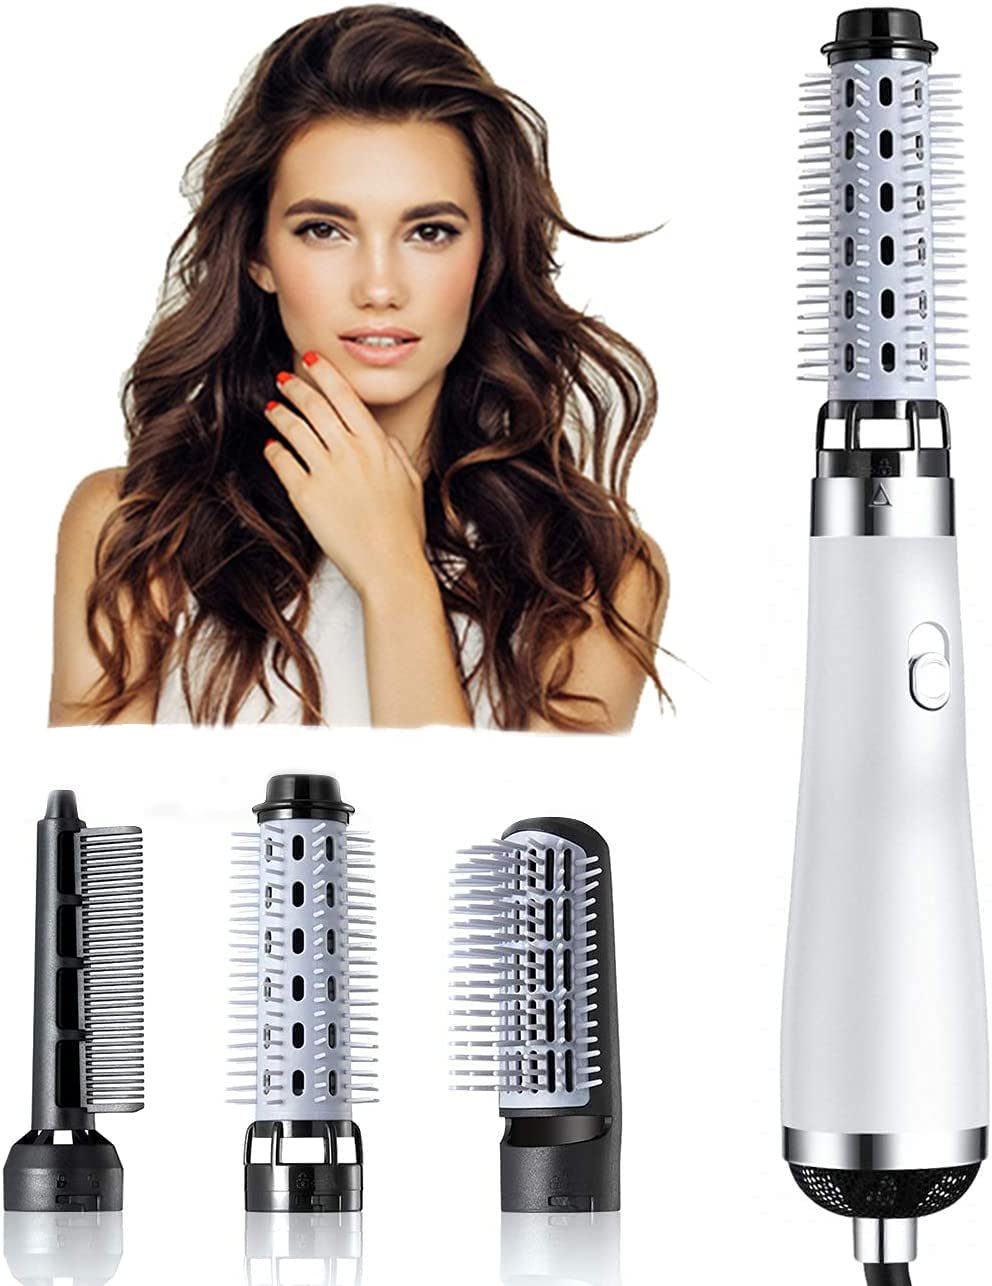 Hair Dryer Arlington Mall Brush Newest Upgrade Max 71% OFF hot Styling and Volumizer